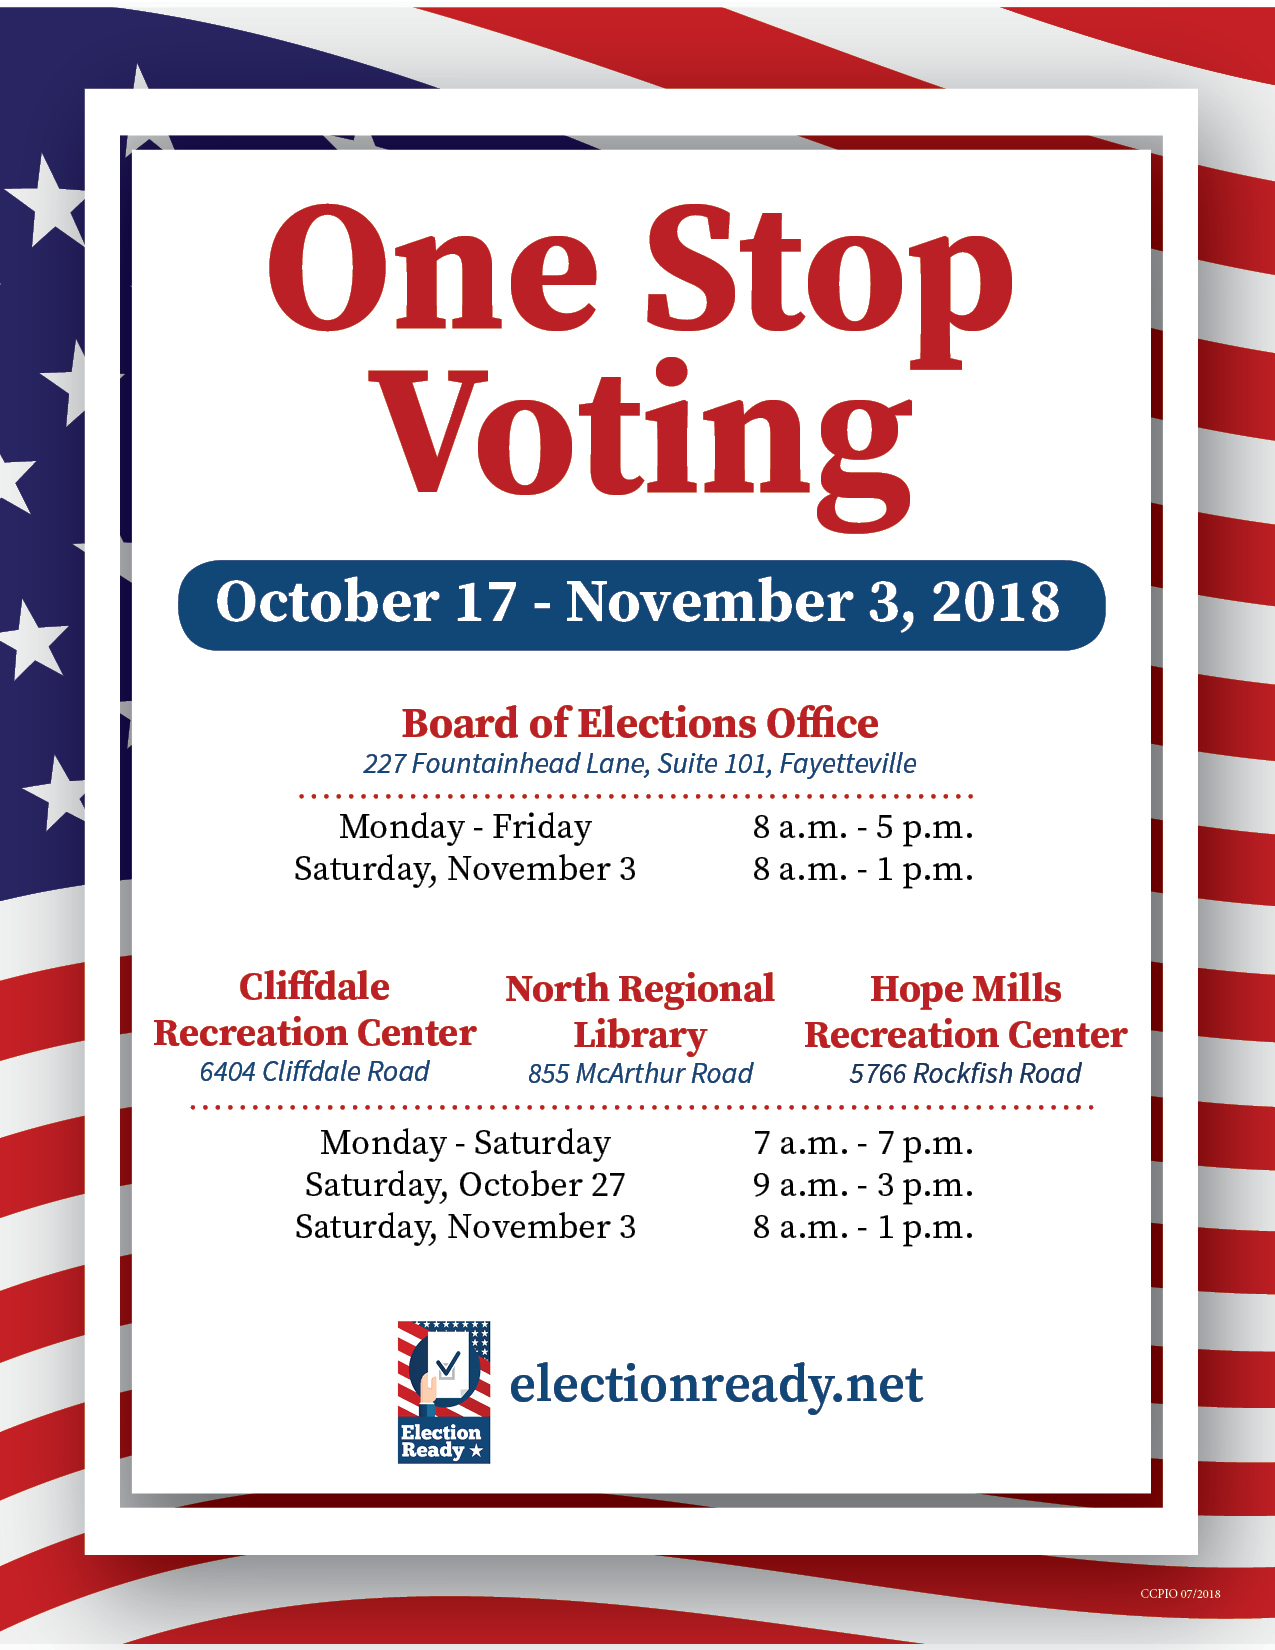 One-stop voting schedule